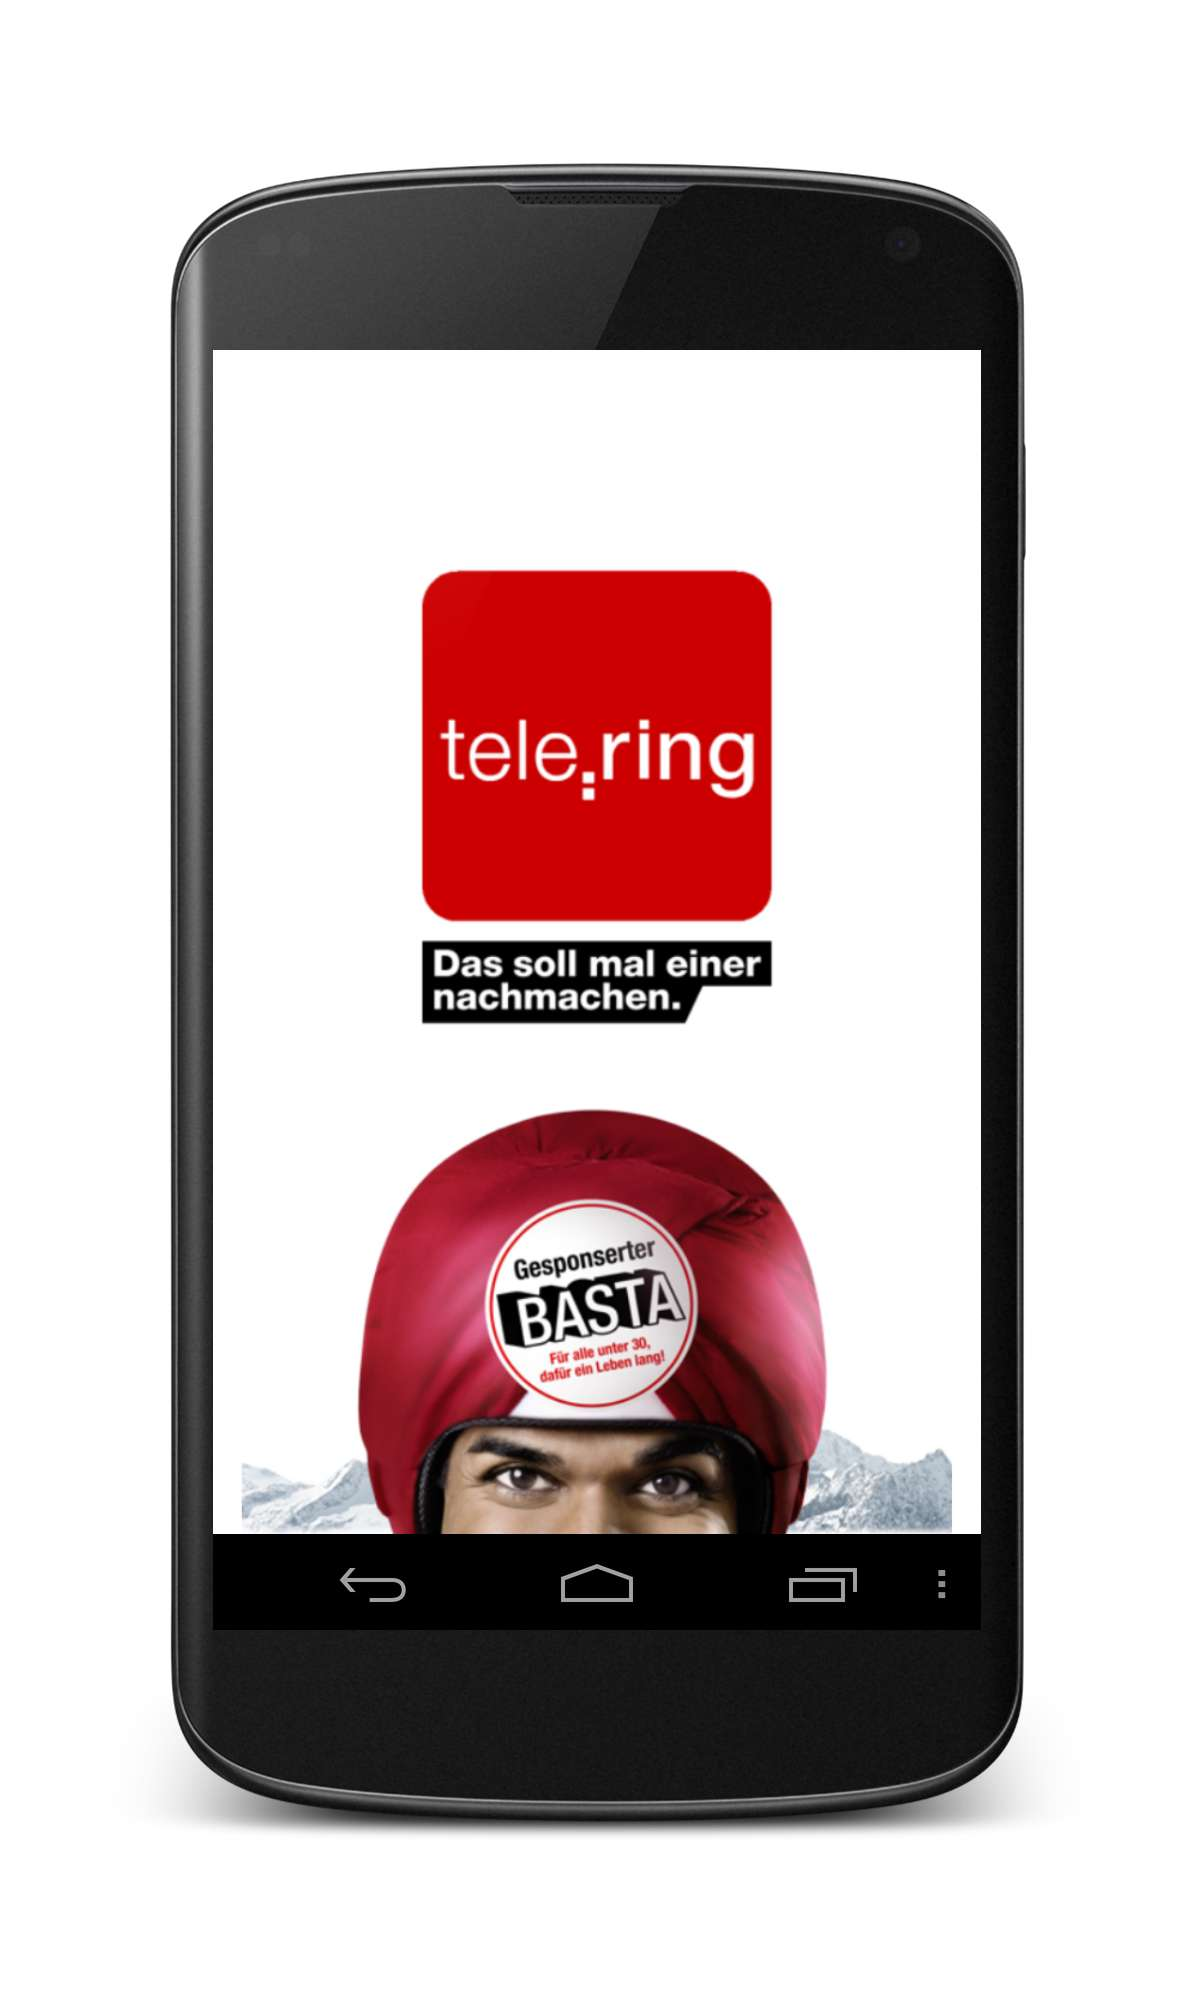 Tele.ring and the Inder are brands of T-Mobile Austria.